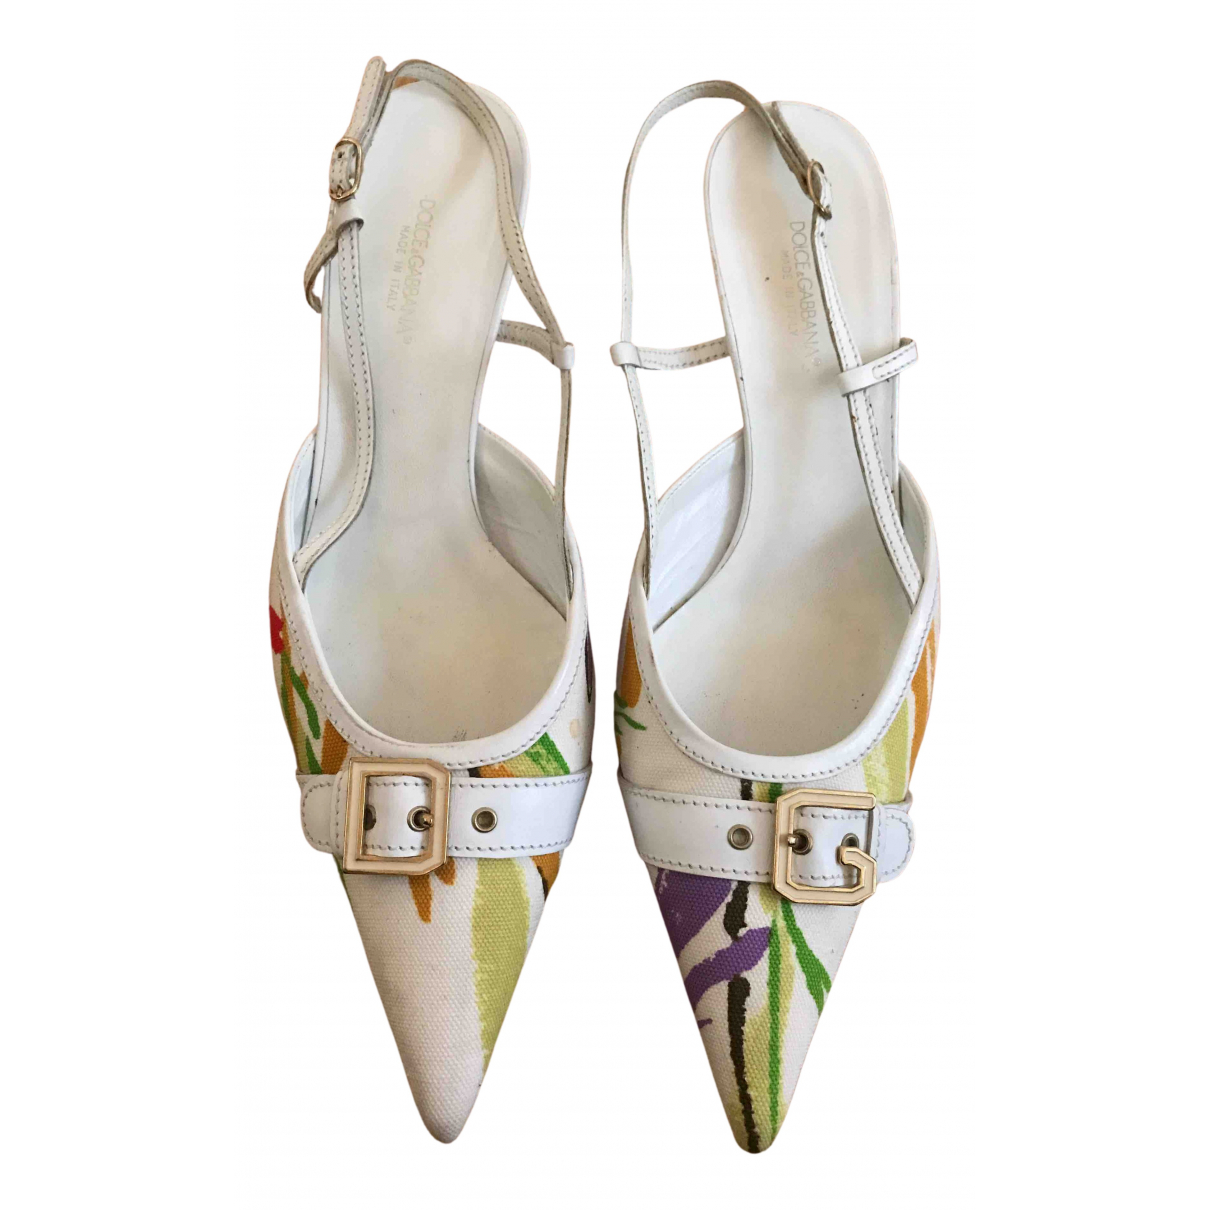 Dolce & Gabbana N White Cloth Heels for Women 40 EU